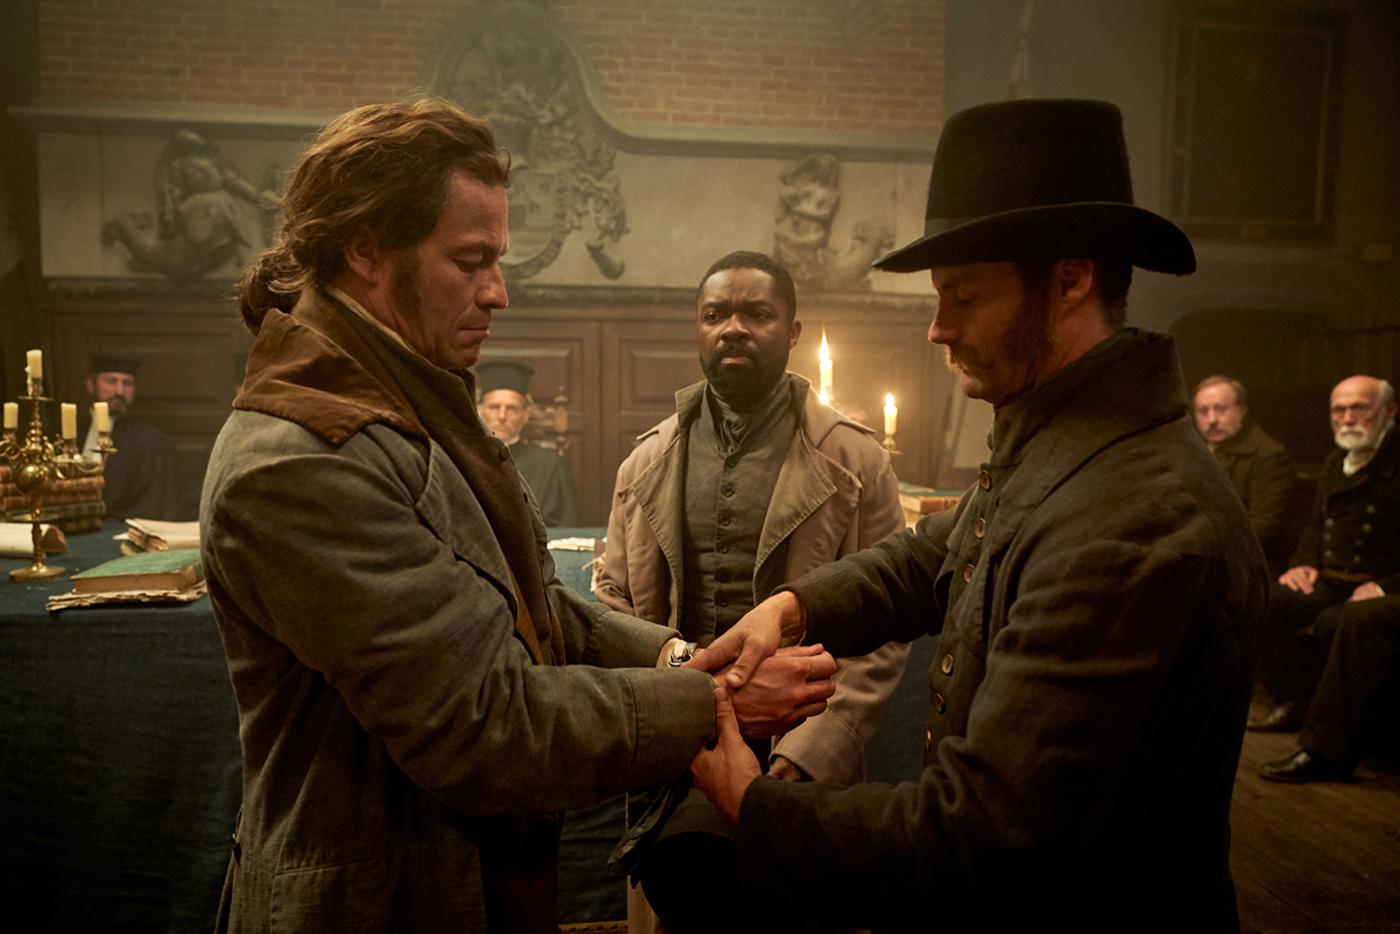 Jean Valjean (Dominic West) is arrested by Javert (David Oyelowo) in Les Miserables. Photo: Robert Viglasky / Lookout Point